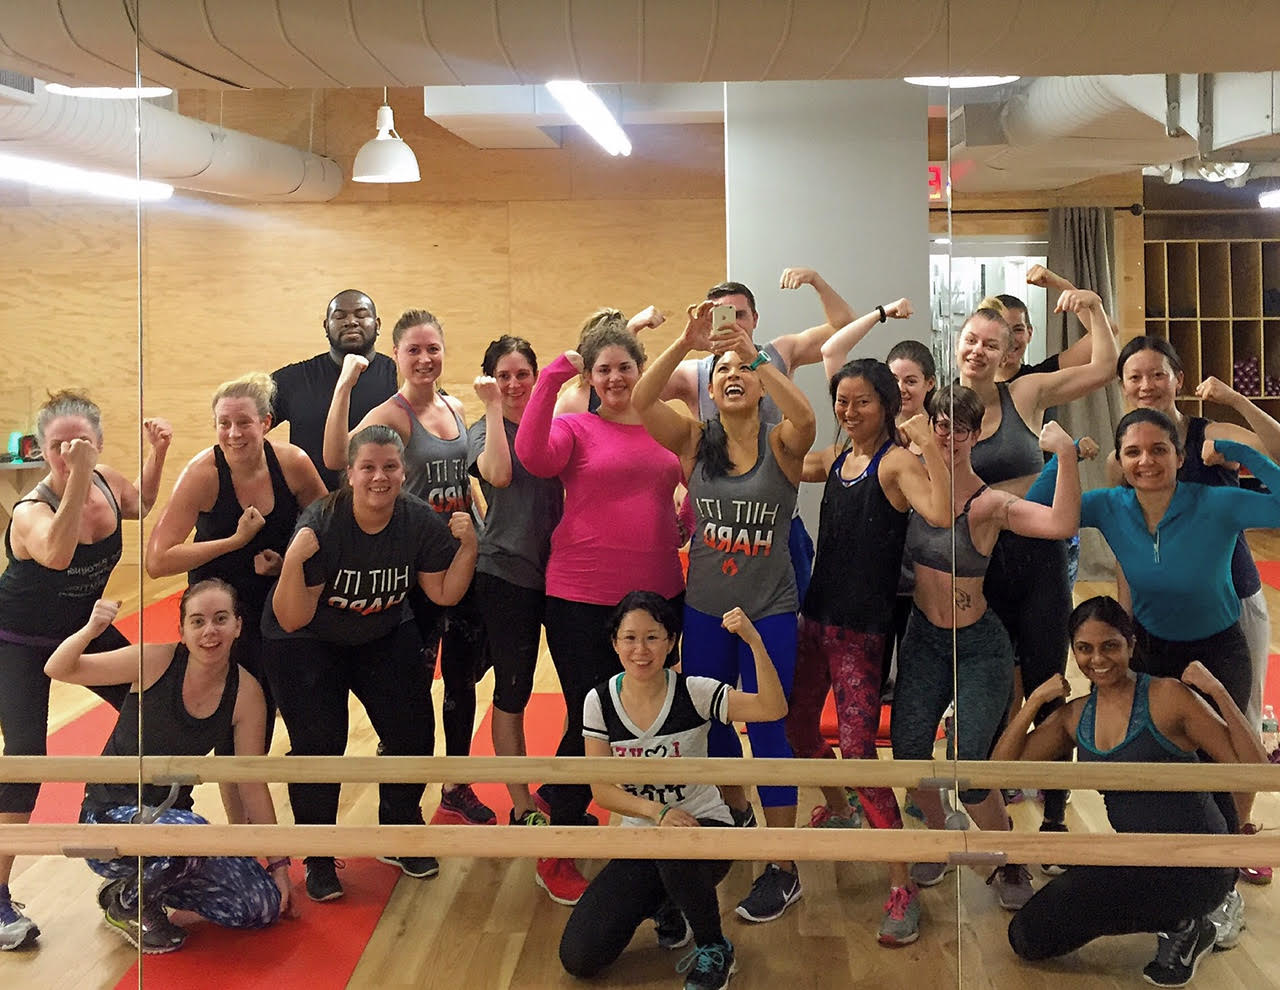 hiit at athleta1.jpg